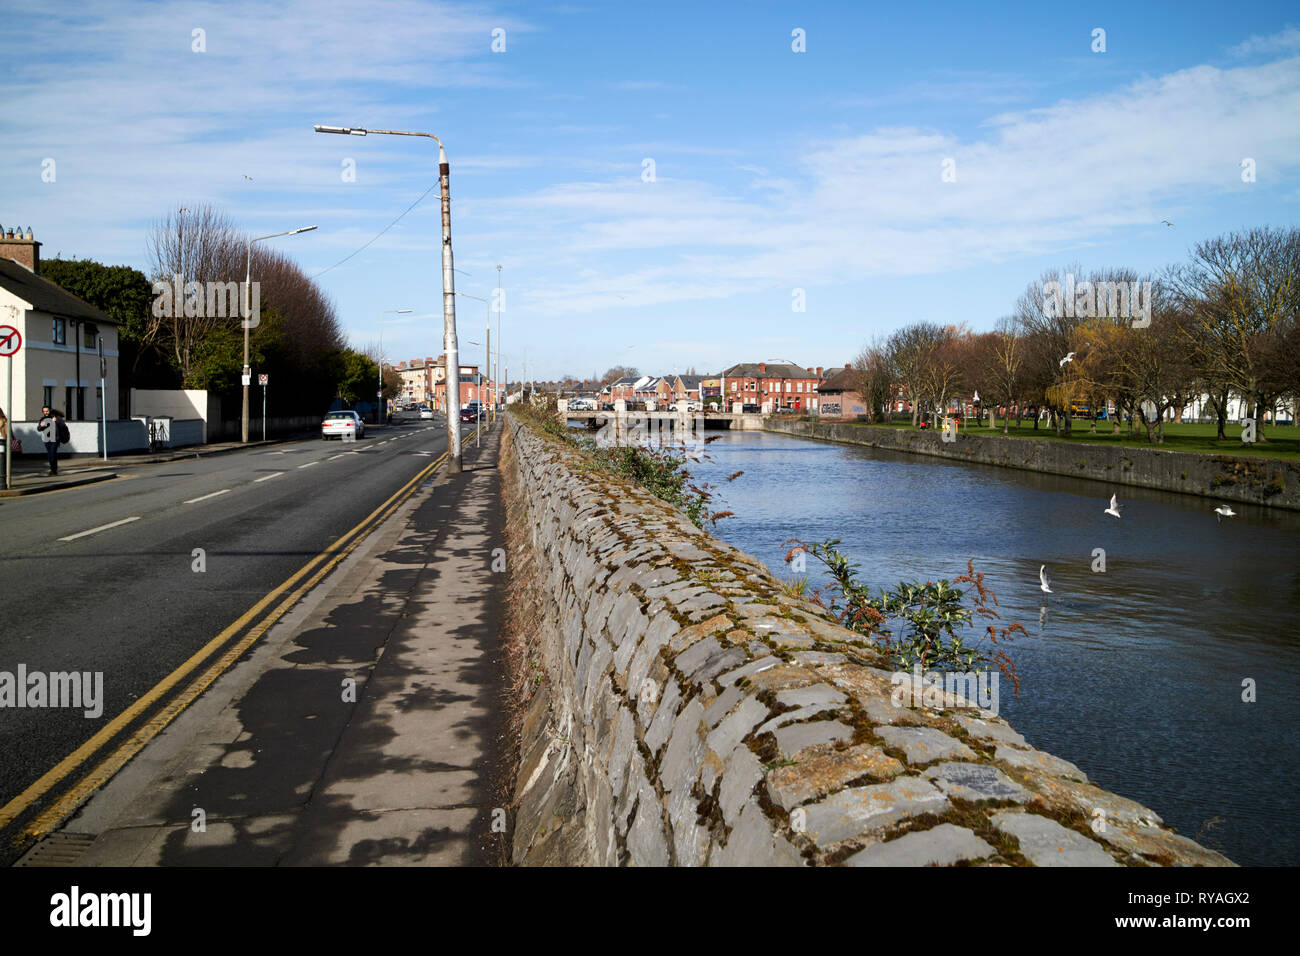 view of the east wall road river tolka riverbank and fairview park north dublin Dublin Republic of Ireland Europe - Stock Image